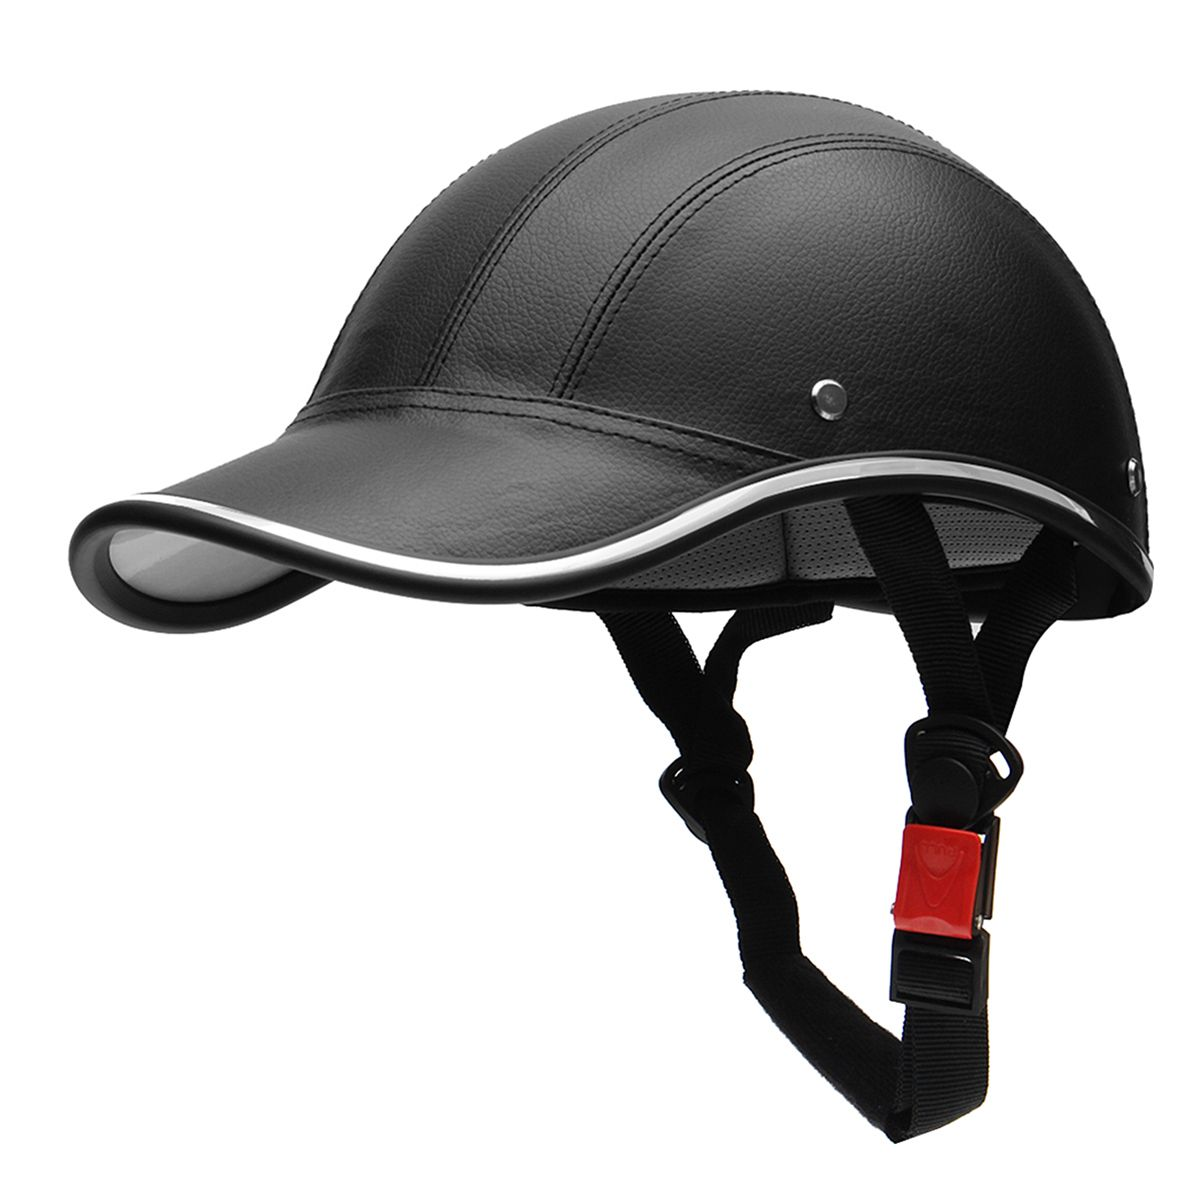 Half Helmet Baseball Cap Style Safety Hard Hat Open Face For Motorcycle Bike Scooter Motorcycle Accessories Parts From Automobiles Motorcycles On Banggood C Half Helmets Helmet Motorcycle Helmets Half